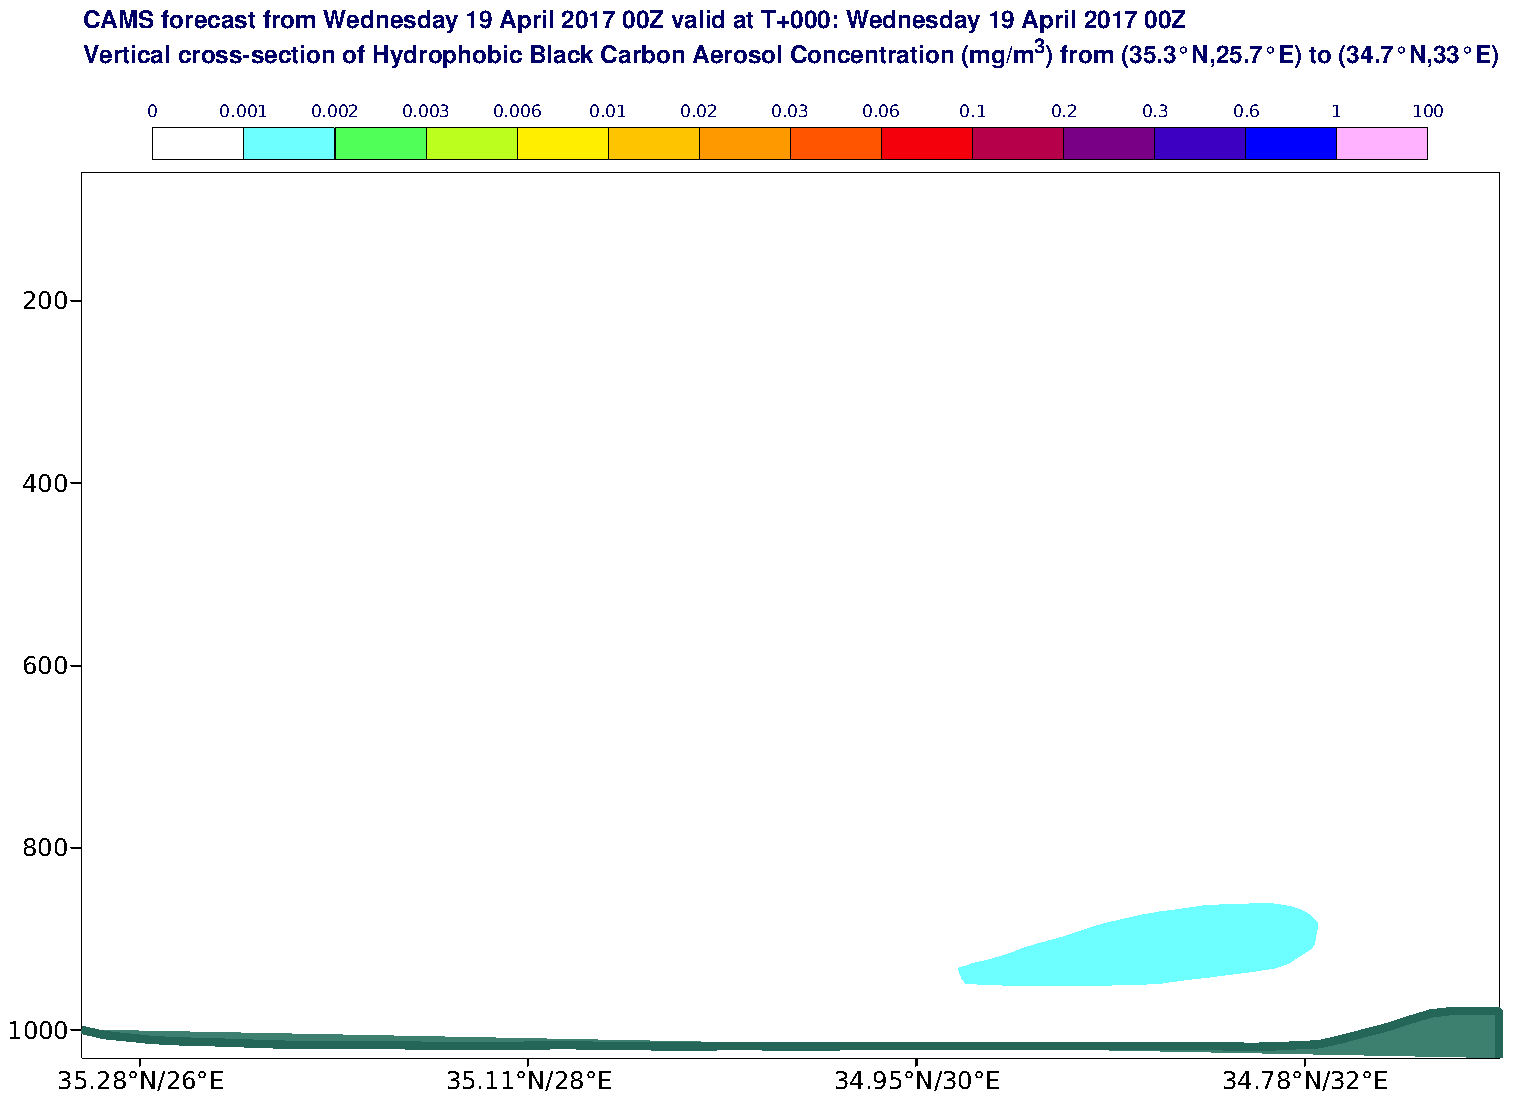 Vertical cross-section of Hydrophobic Black Carbon Aerosol Concentration (mg/m3) valid at T0 - 2017-04-19 00:00